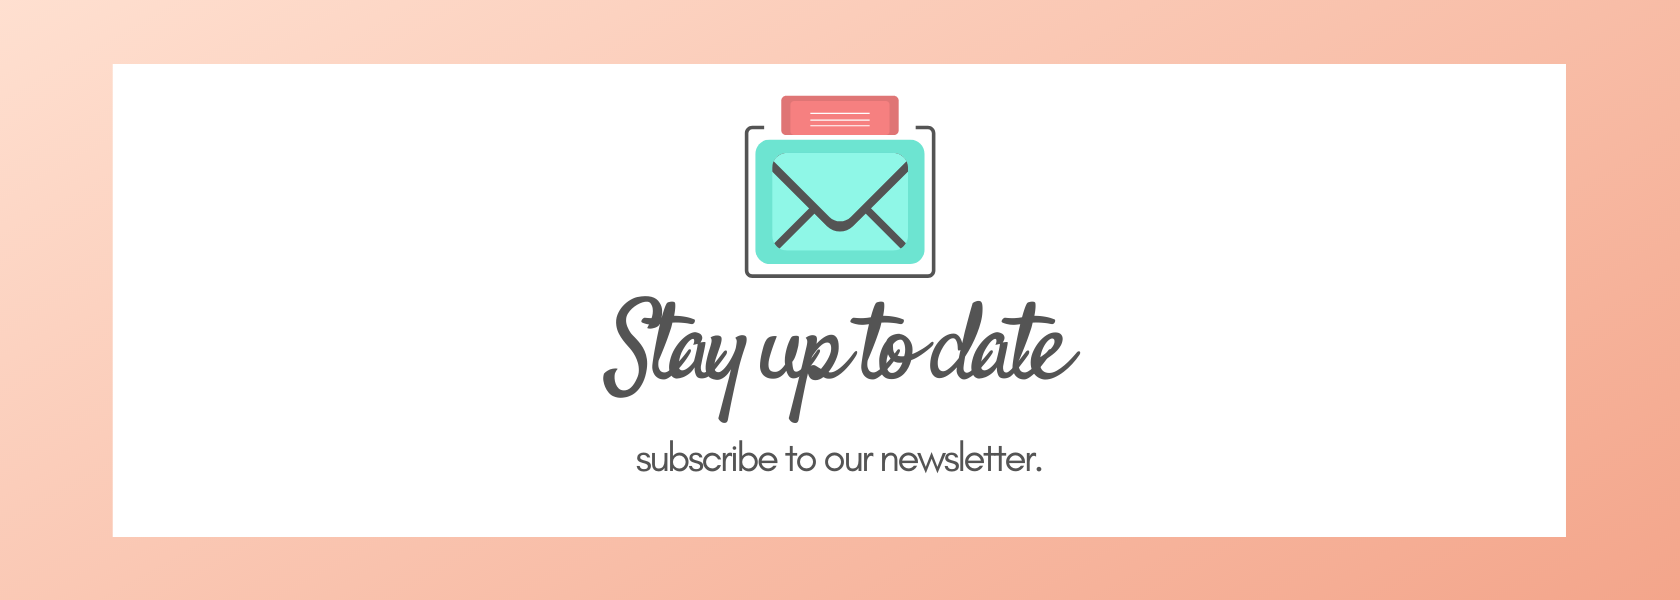 email subscribe header